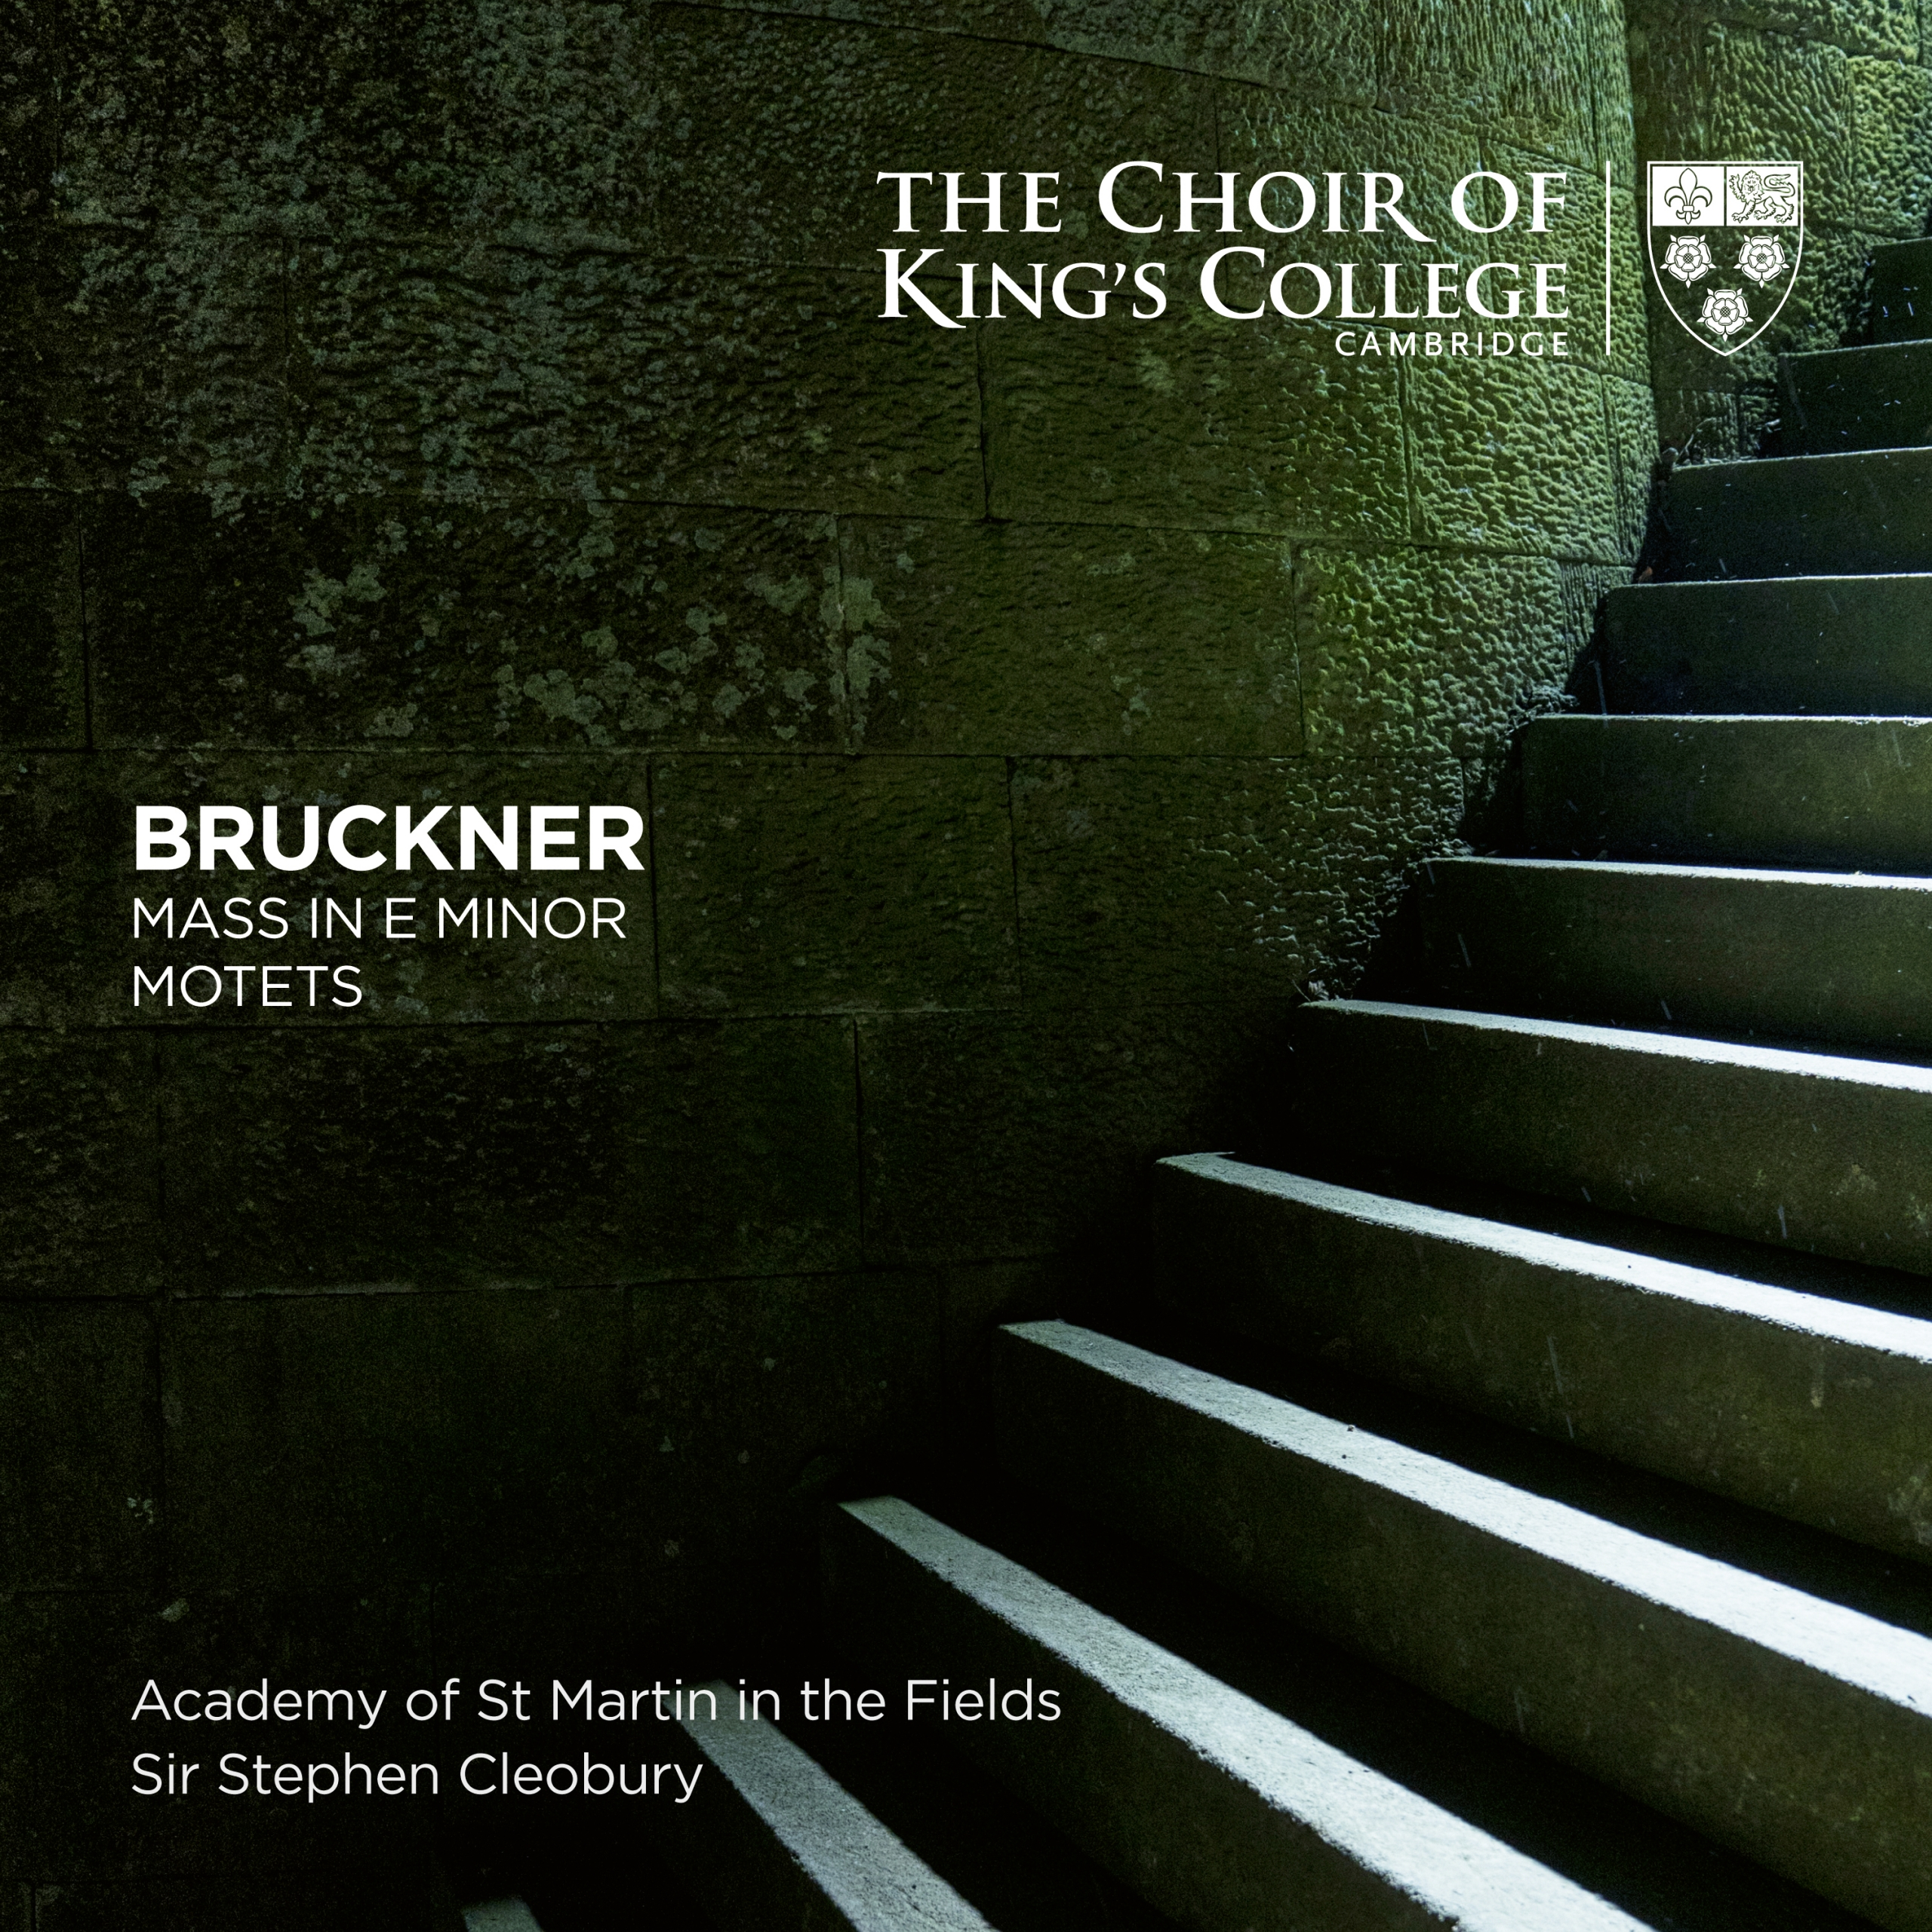 Bruckner Mass and Motets cover